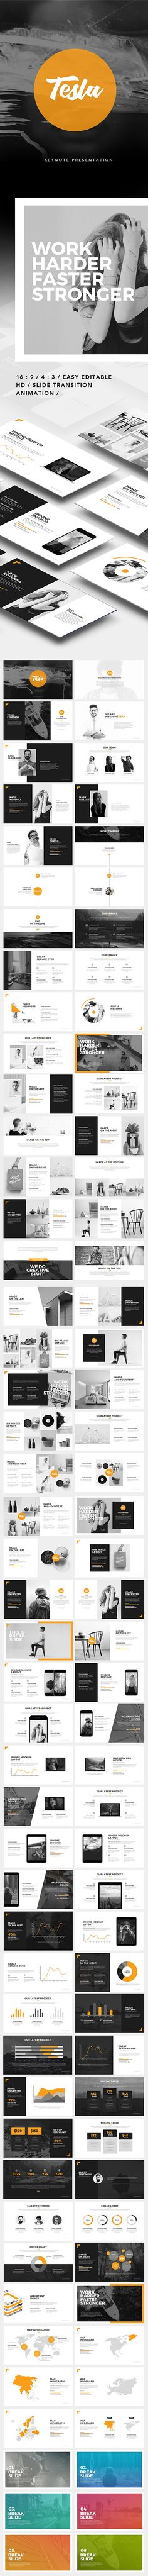 Creative Pitch Deck PowerPoint Template | Pinterest | Pitch, Decking ...